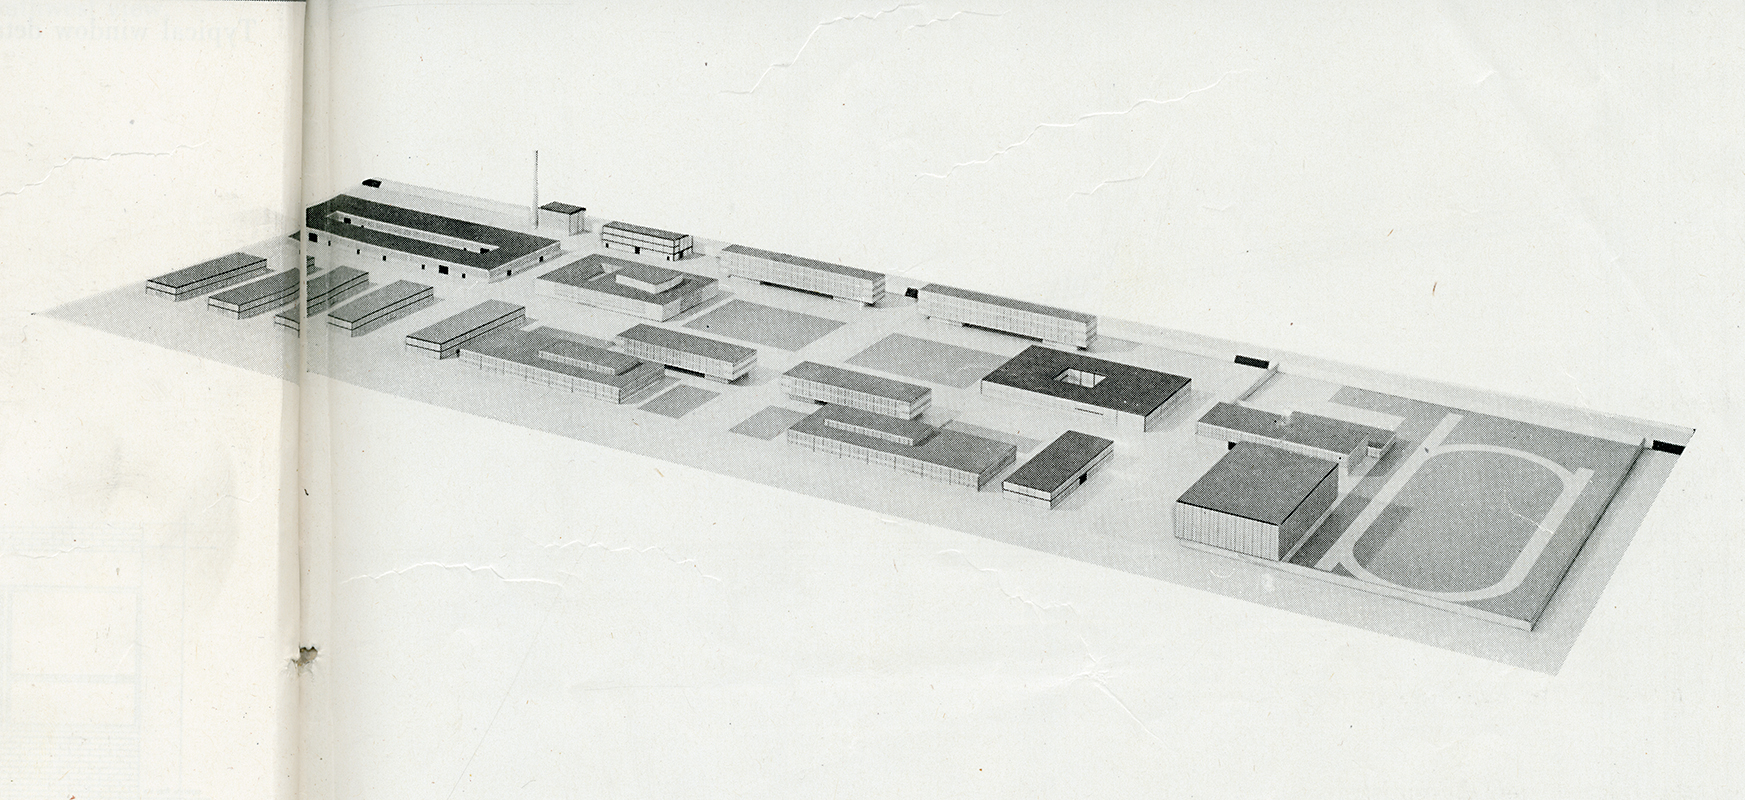 Mies van der Rohe. Arts and Architecture. Mar 1952, 29